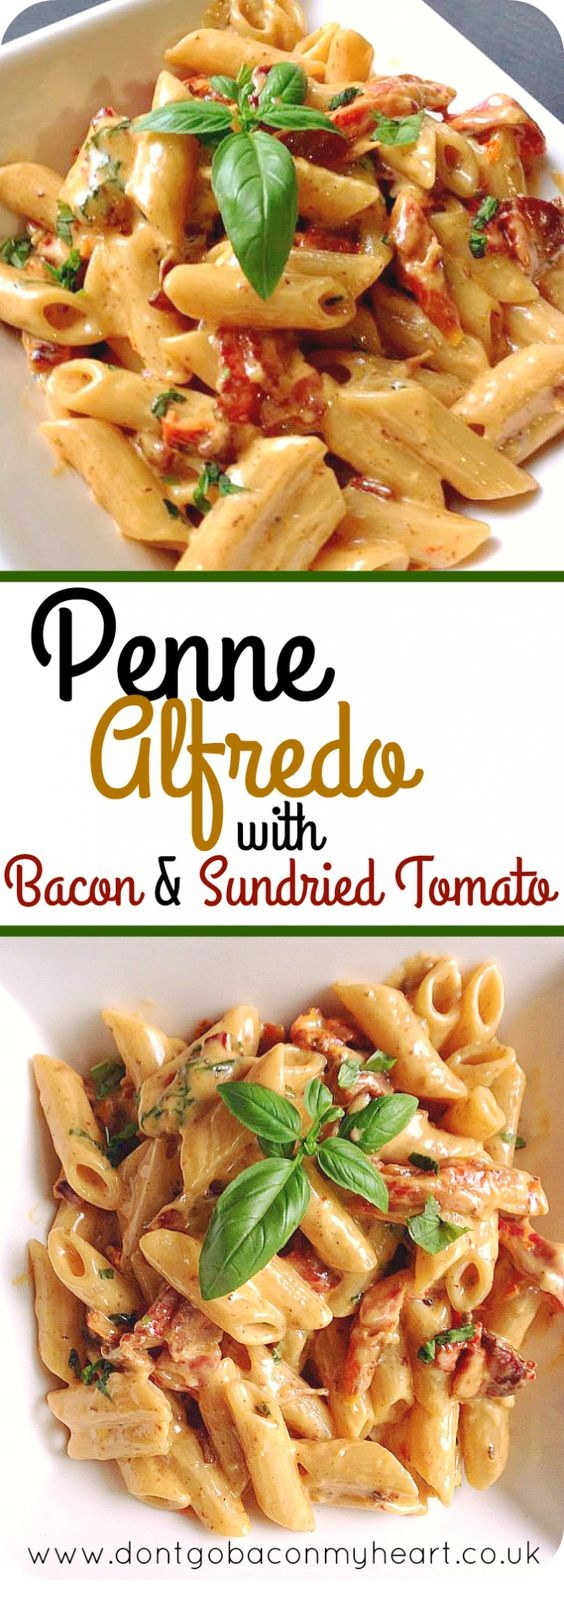 Penne Alfredo with Bacon and Sun Dried Tomato